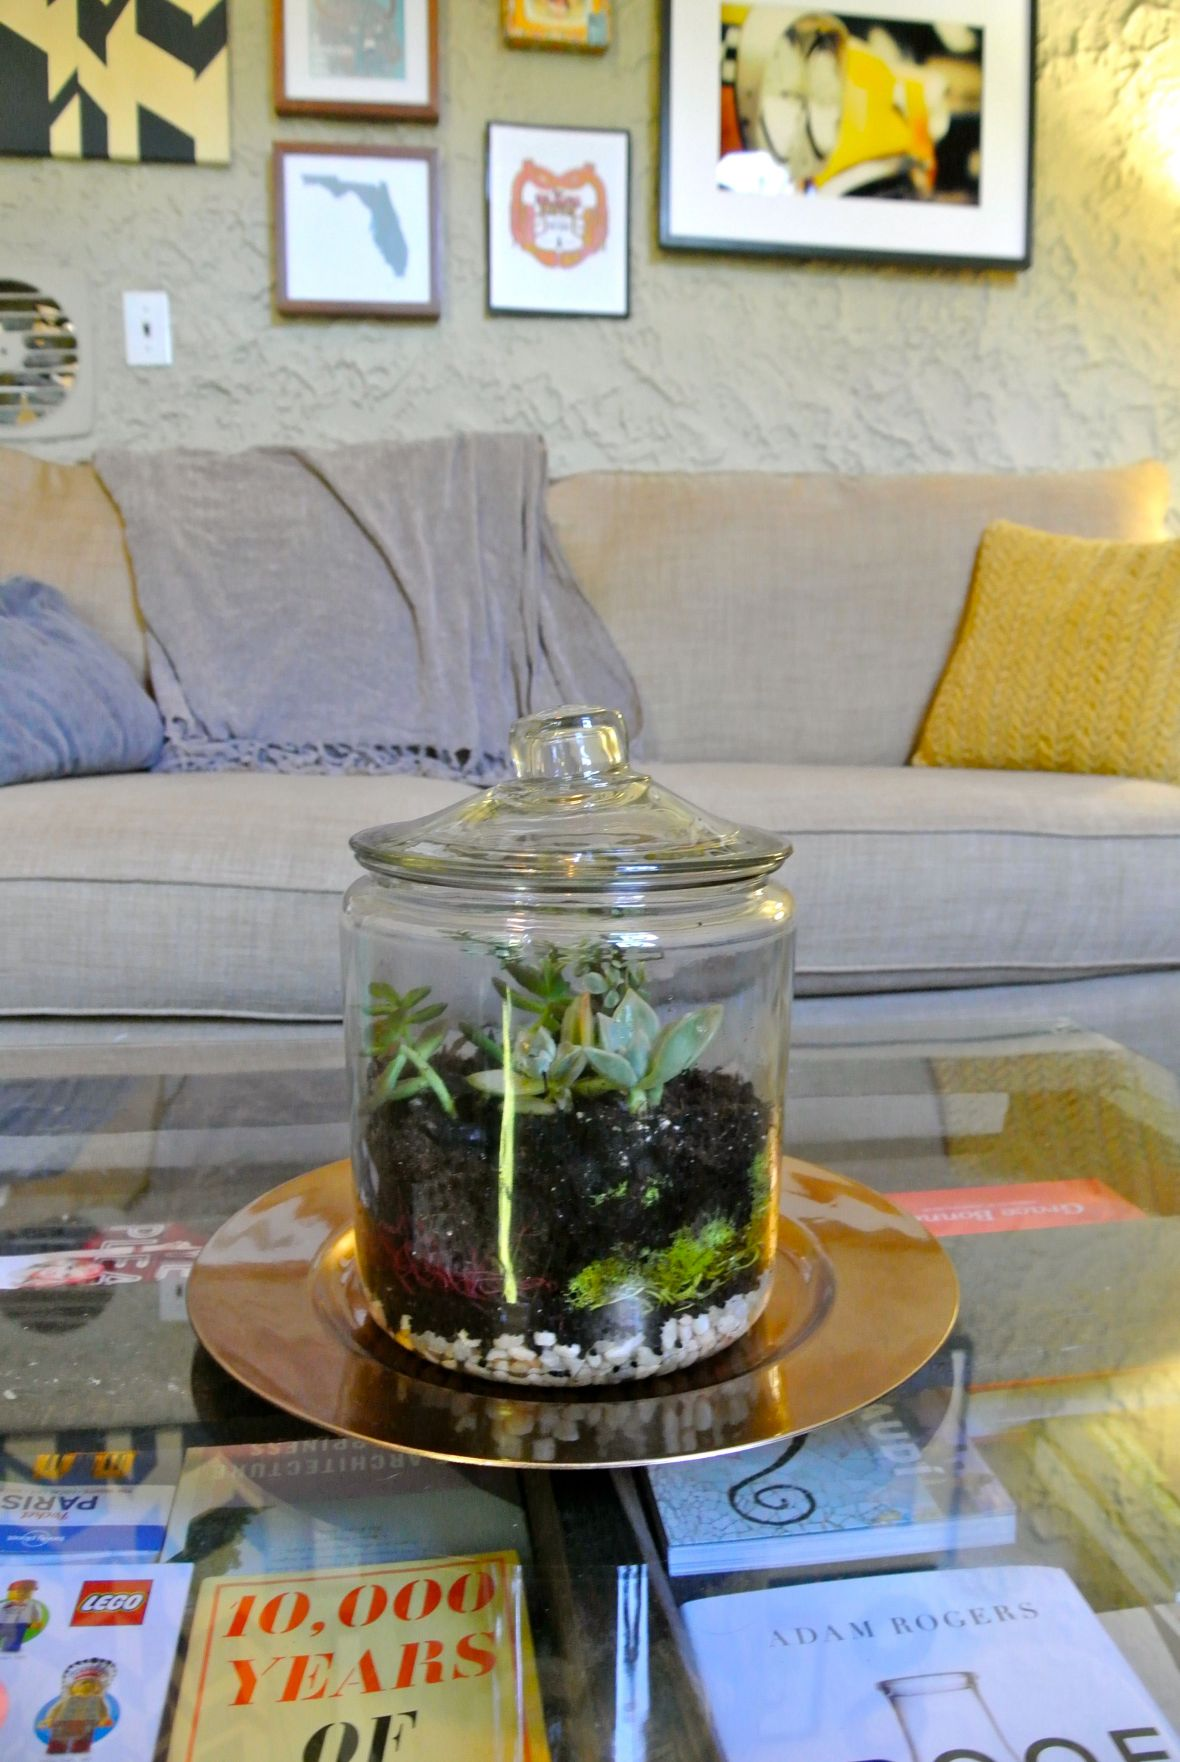 DIY Terrarium - finished product